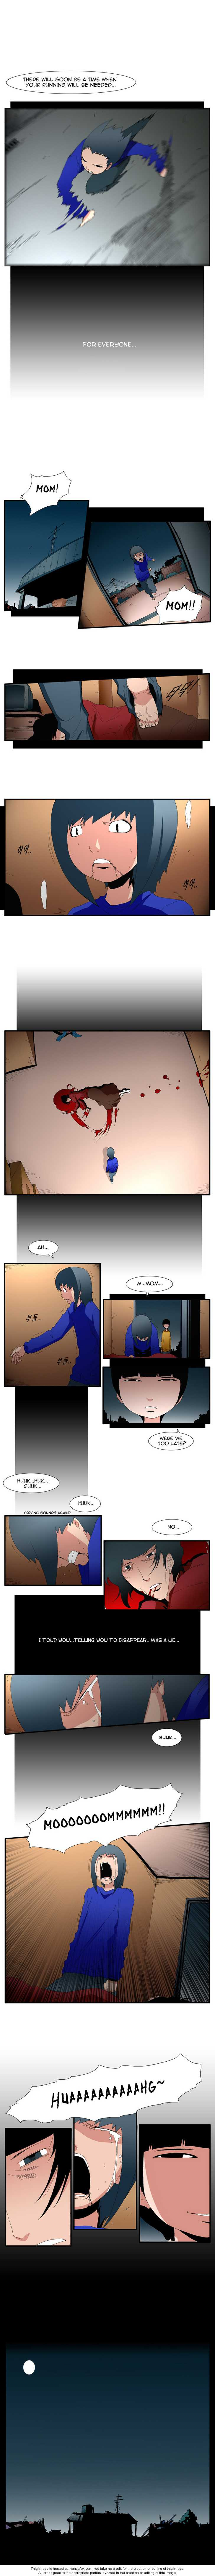 Trace 45 Page 2